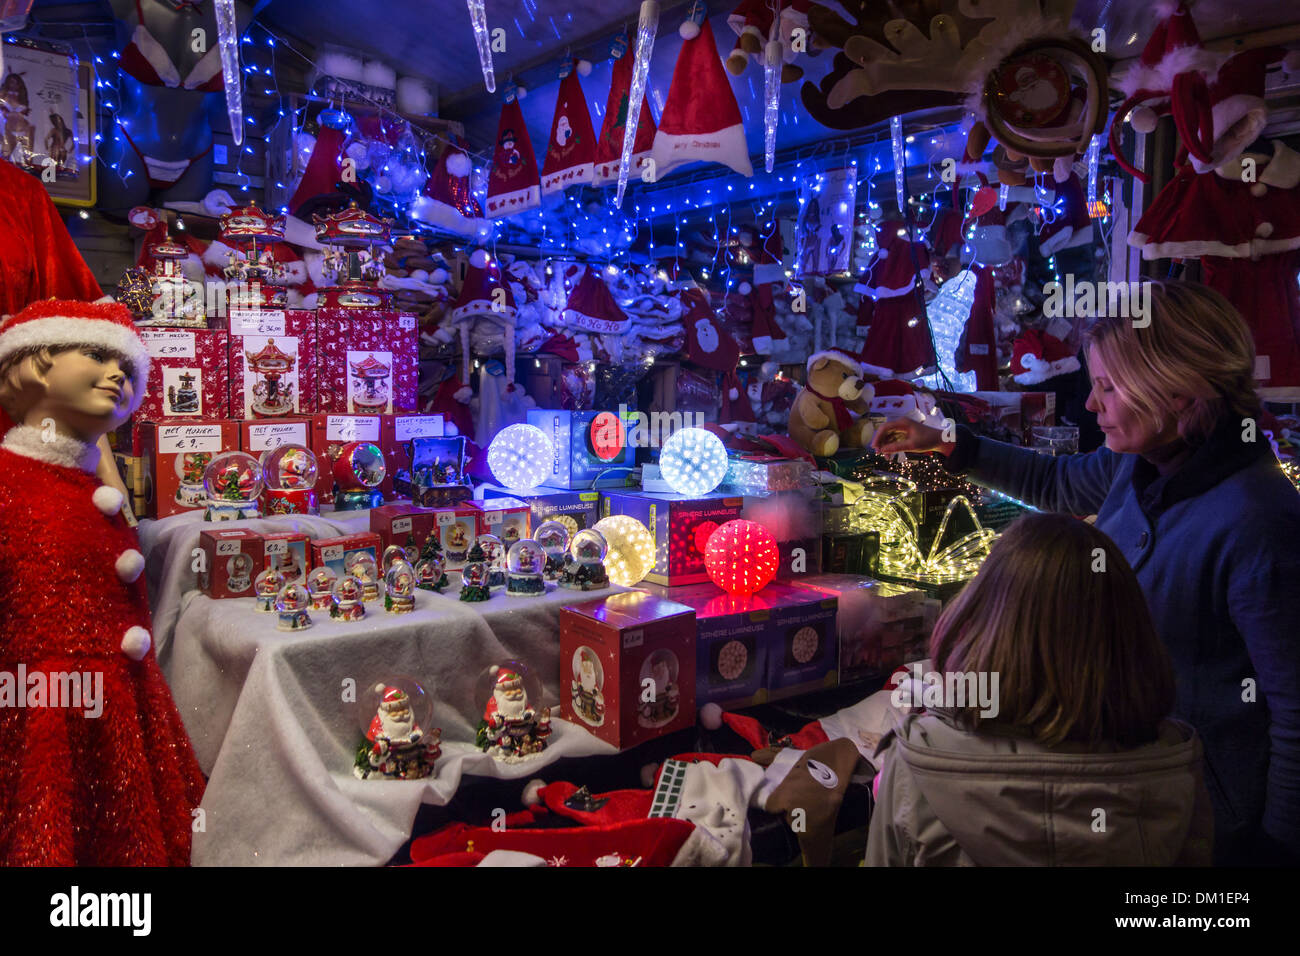 Mother and daughter buying Xmas decorations in market stall at evening Christmas market in winter - Stock Image